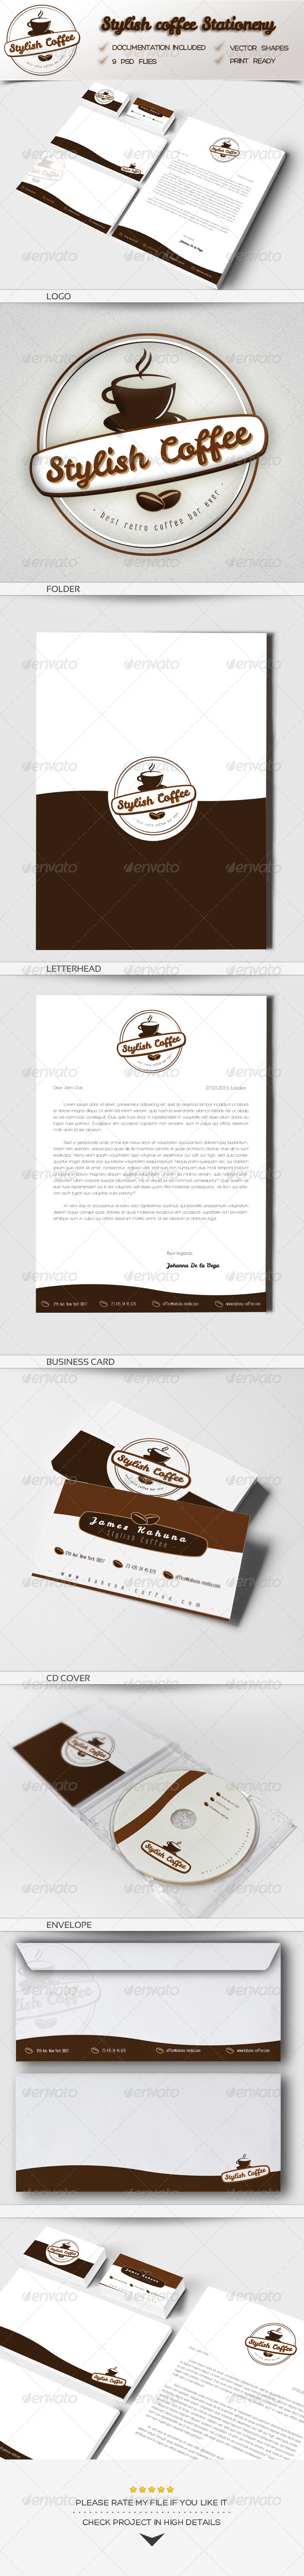 Stylish Coffee Stationery - Stationery Print Templates